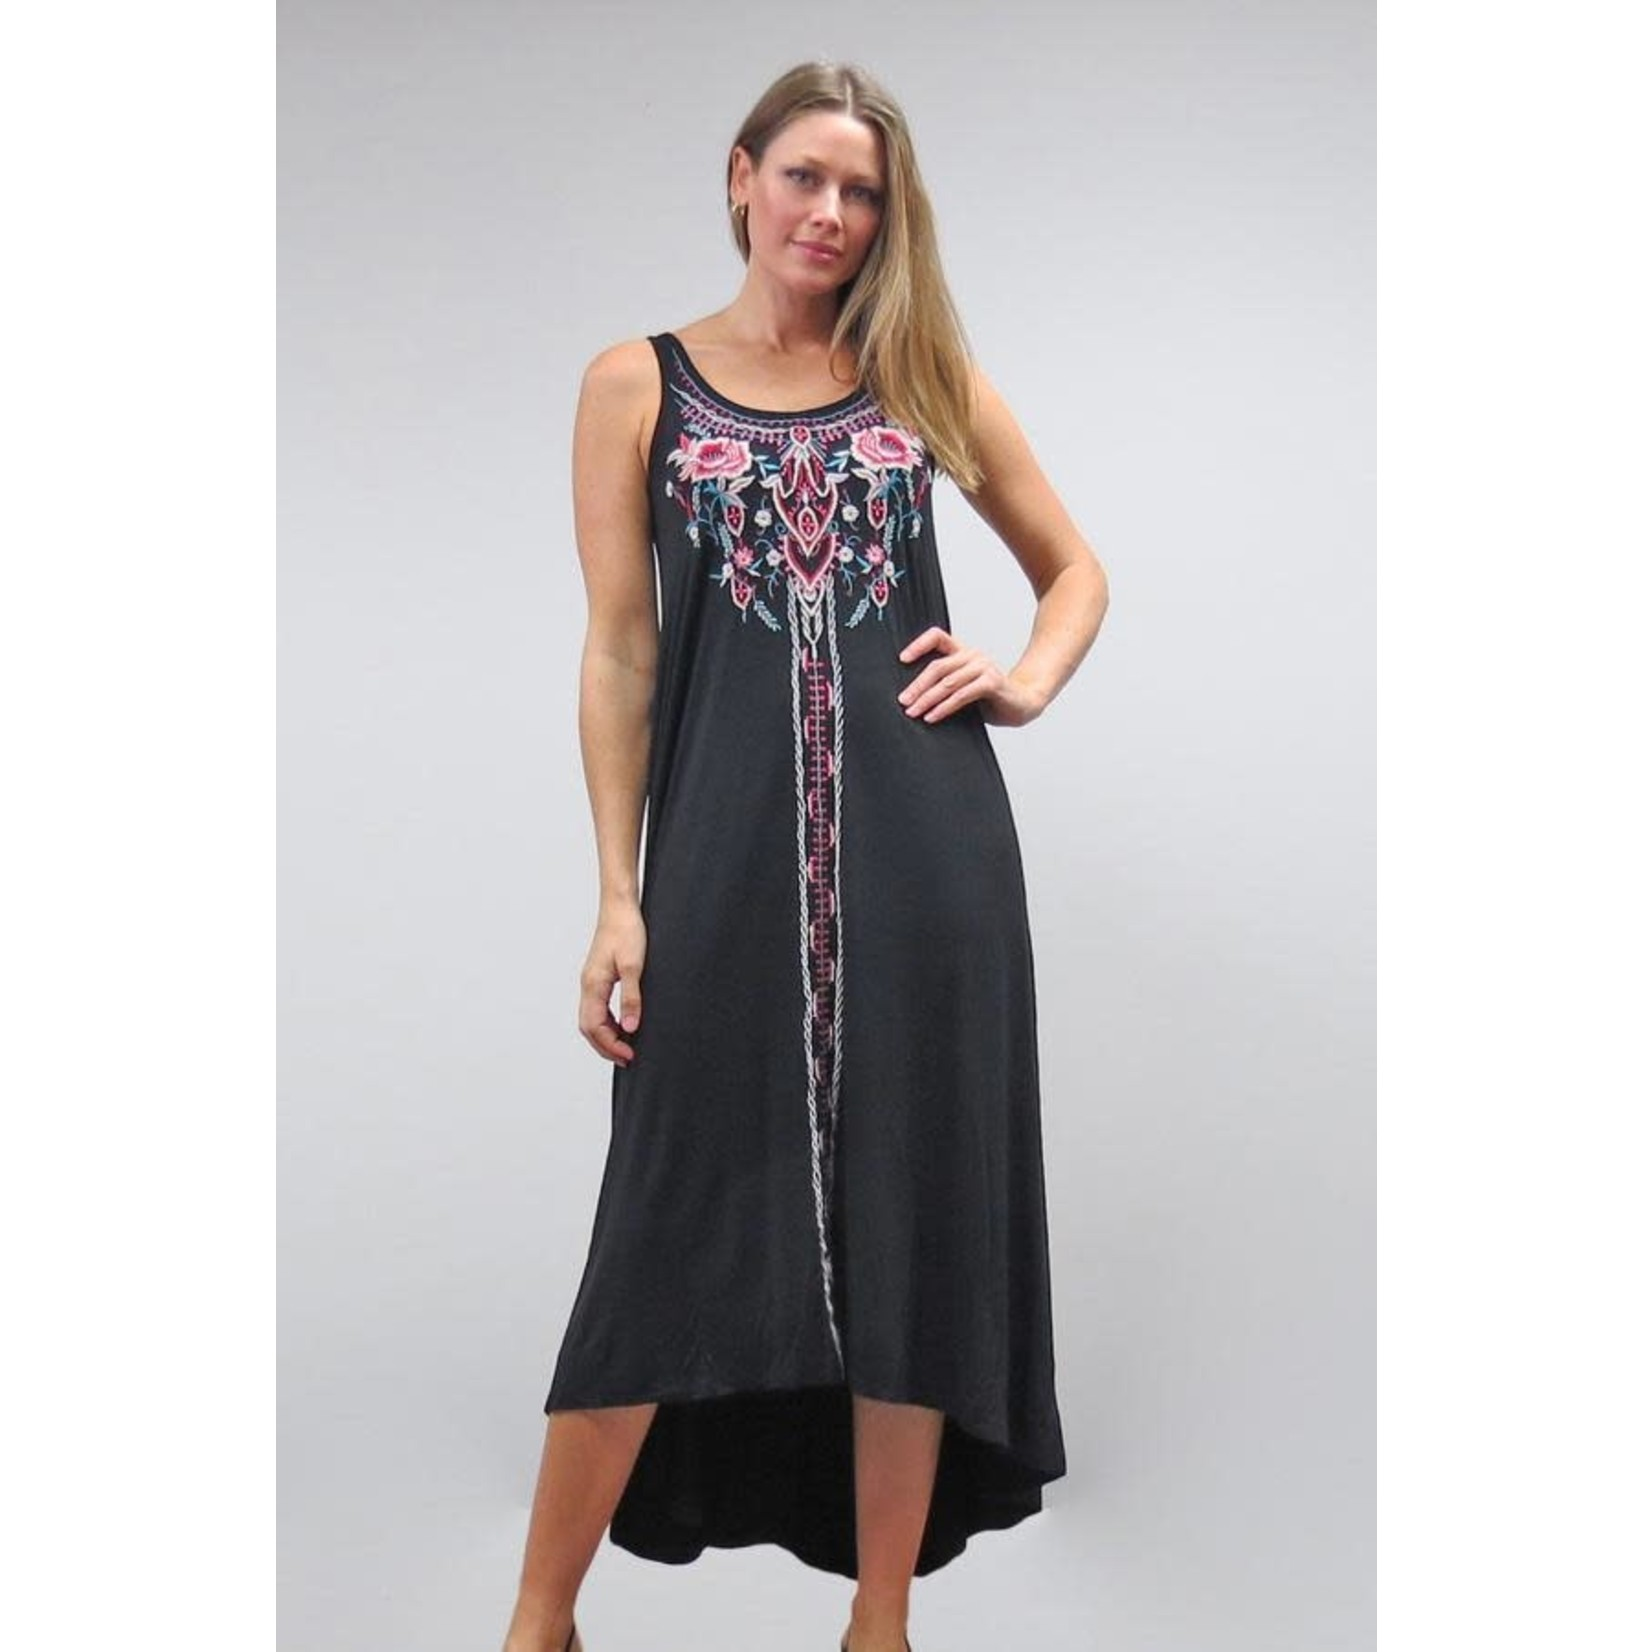 Caite Jules Faded Black Long Dress w/ Multi-color Embroidery